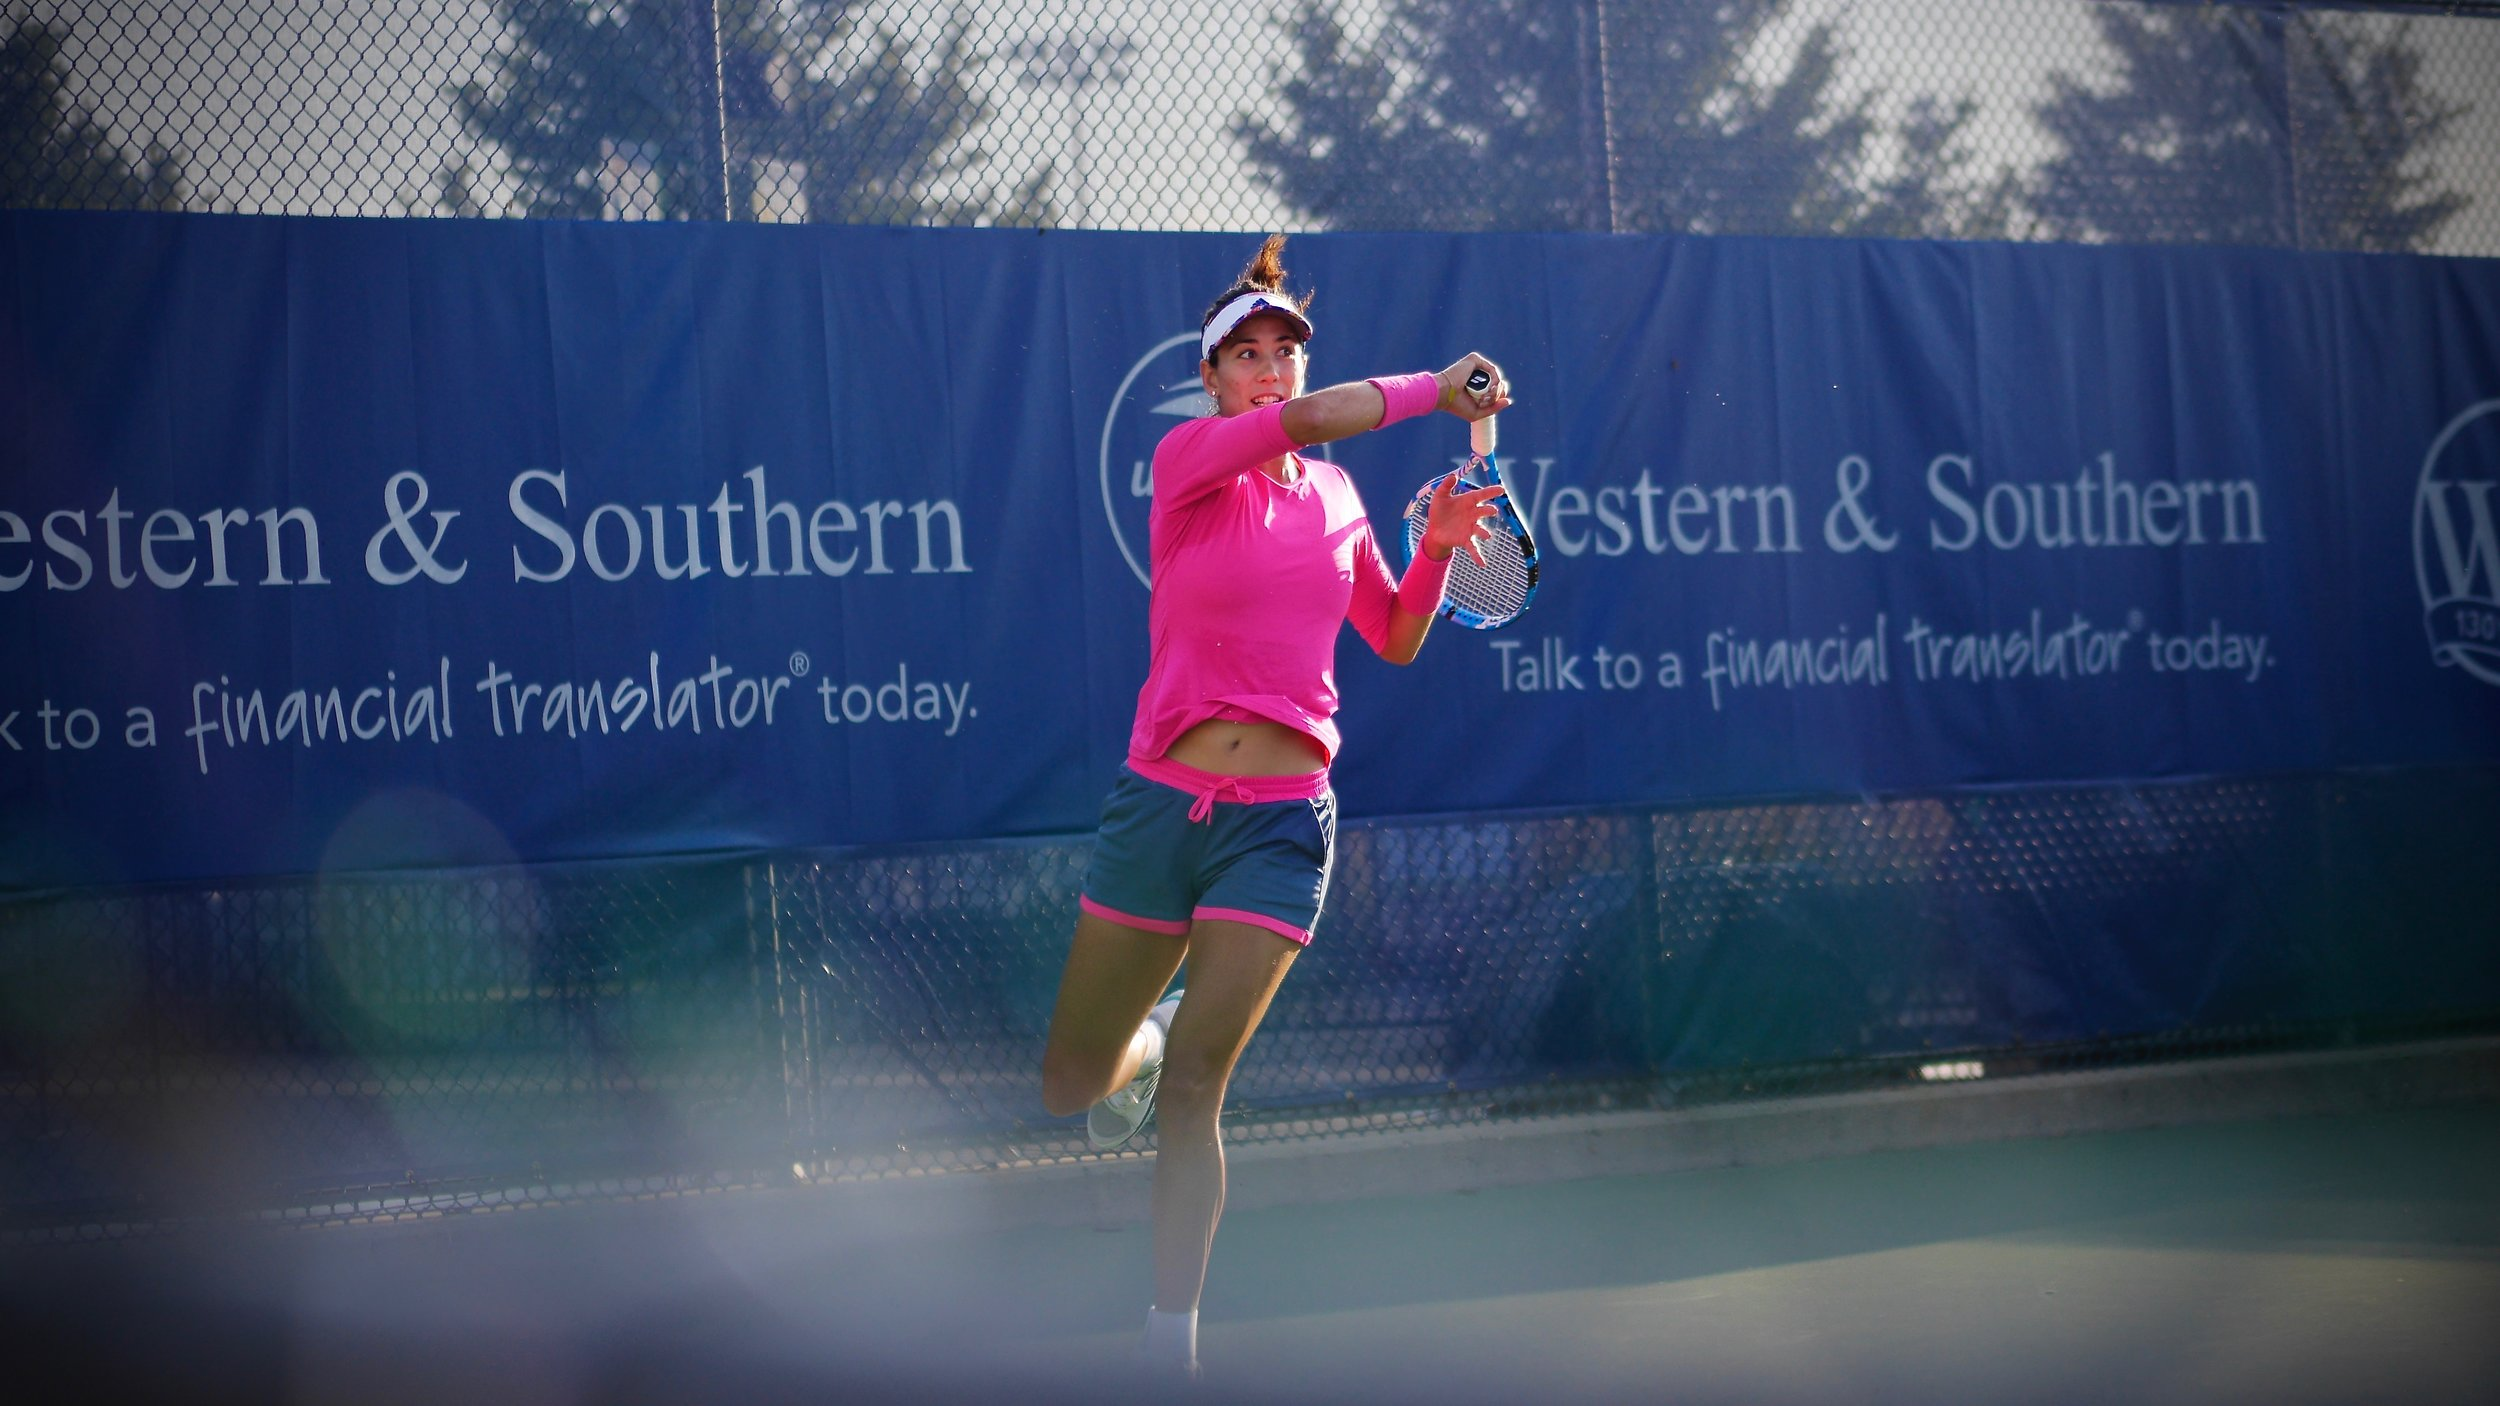 Western & Southern Open - 2018 PHOTO & VIDEO